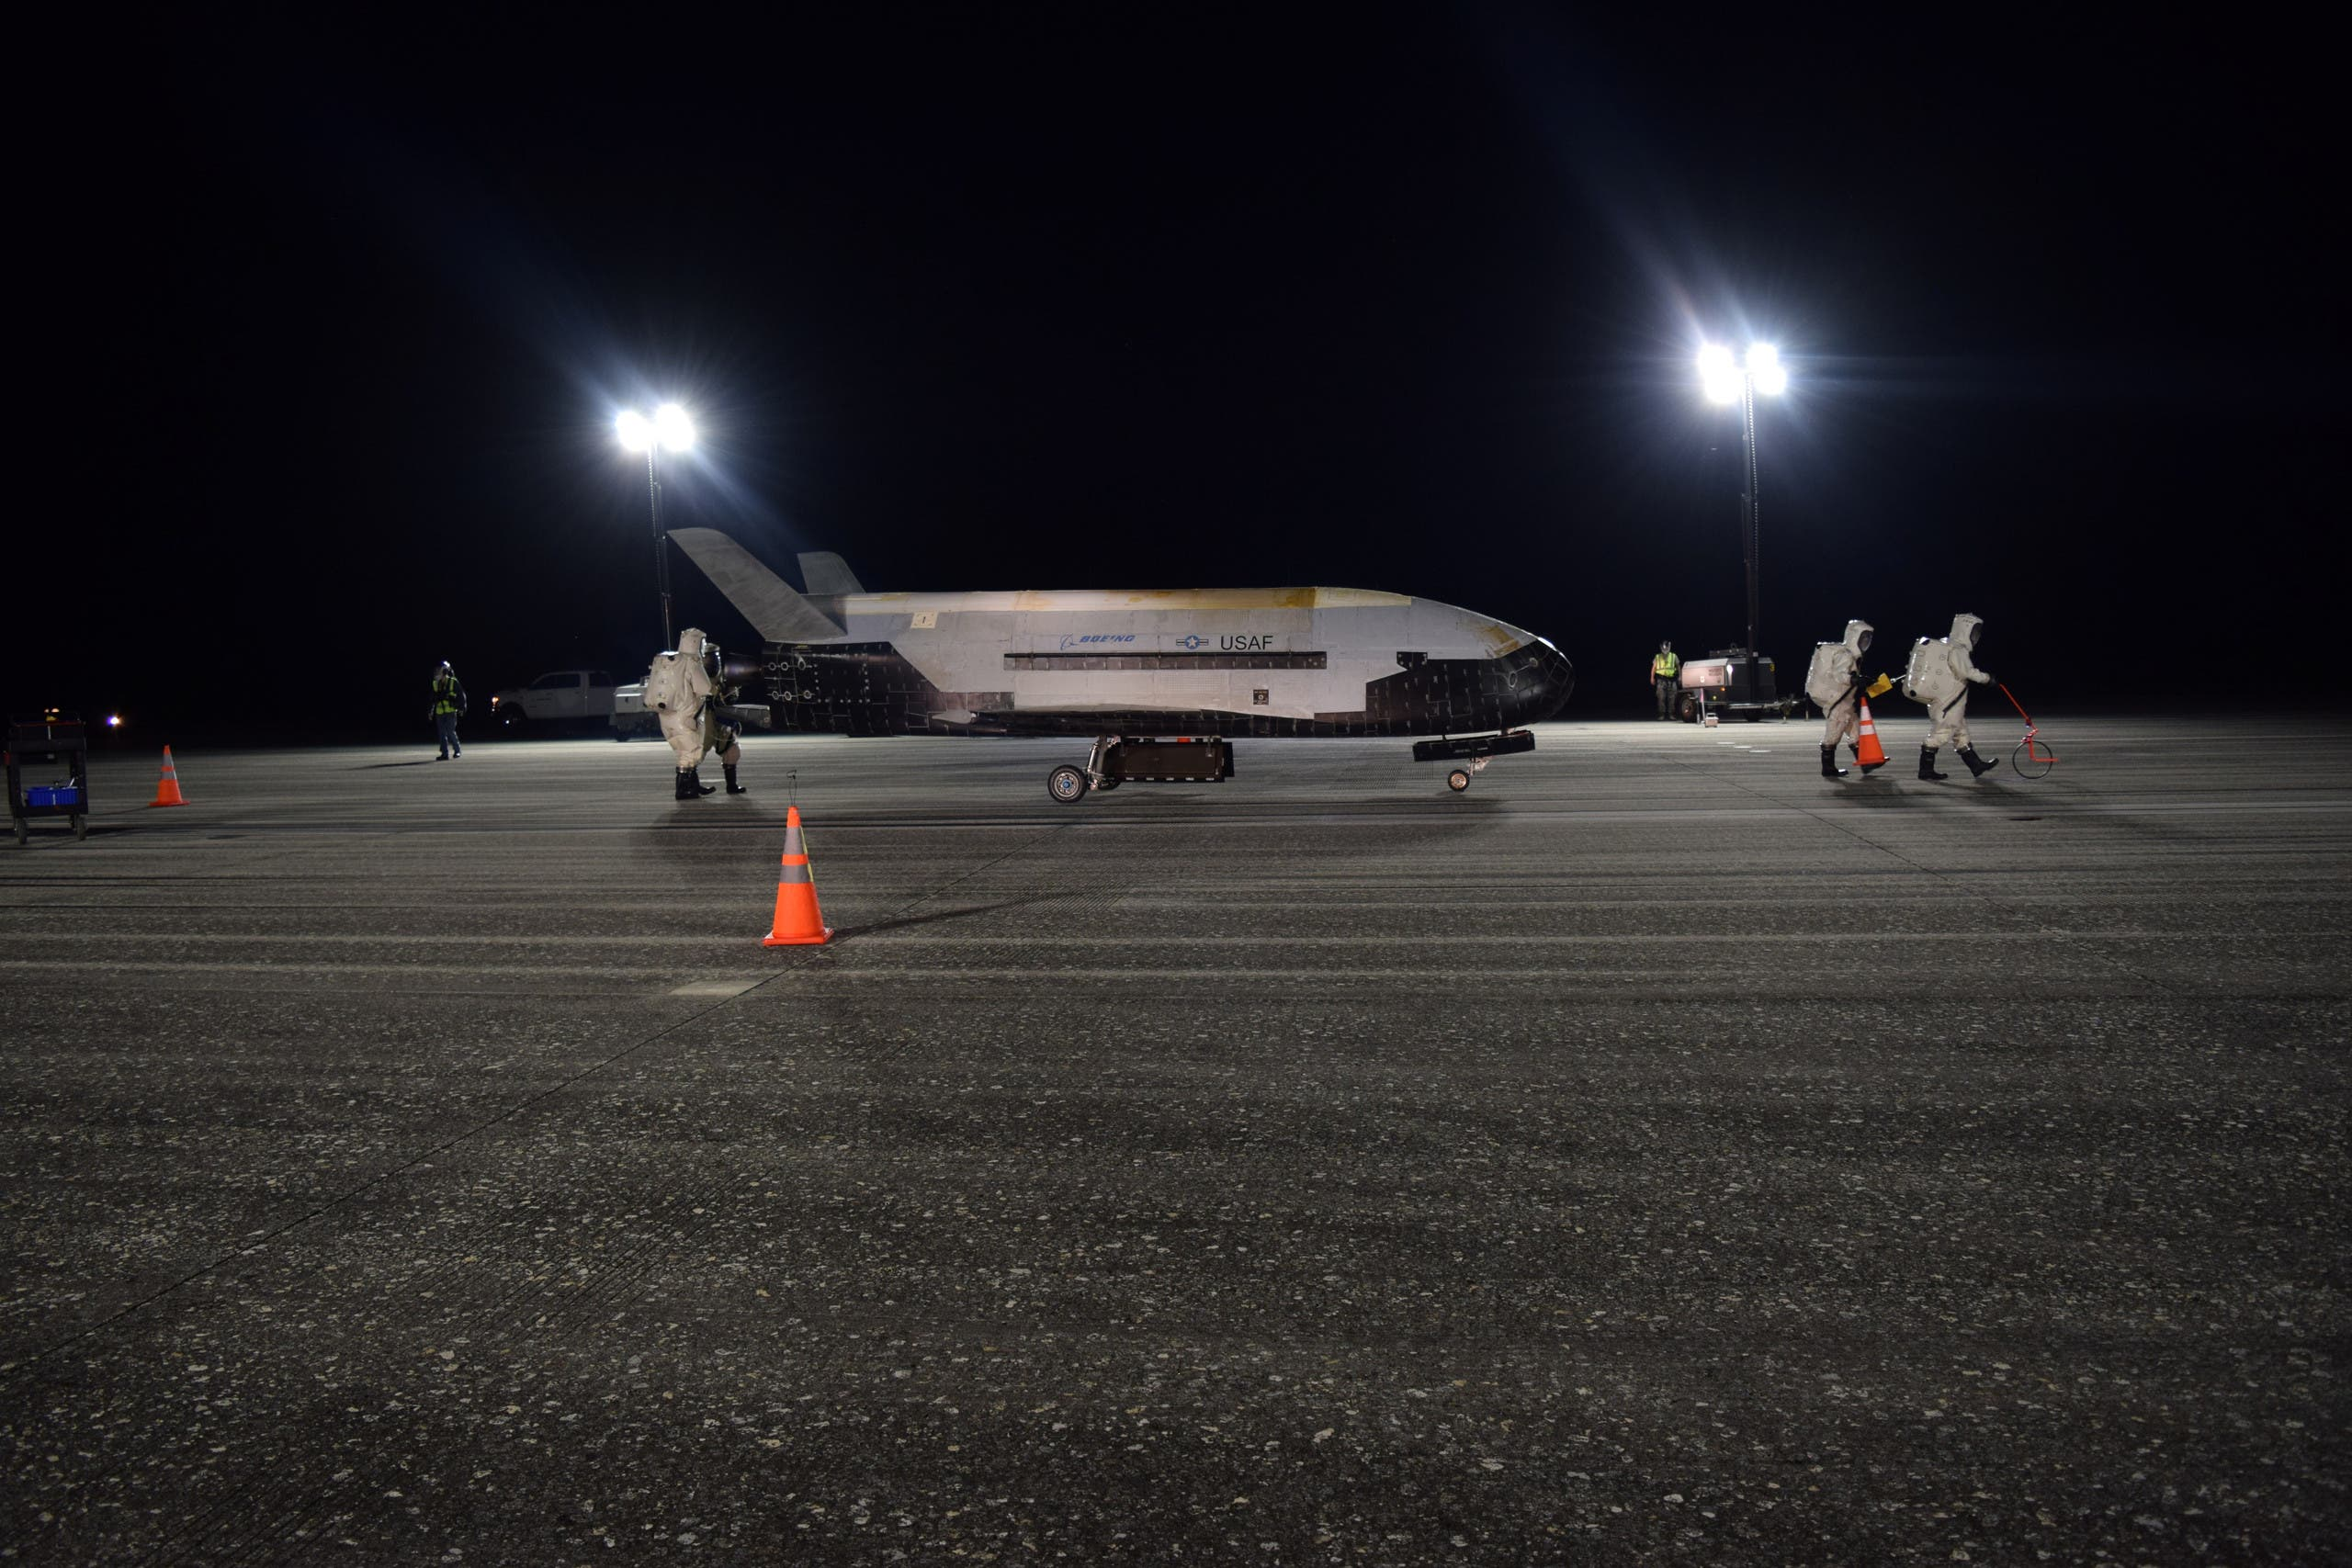 The US Air Force's X-37B Orbital Test Vehicle Mission 5 is seen after landing at NASA's Kennedy Space Center Shuttle Landing Facility, in Florida, on October 27, 2019. (Reuters)